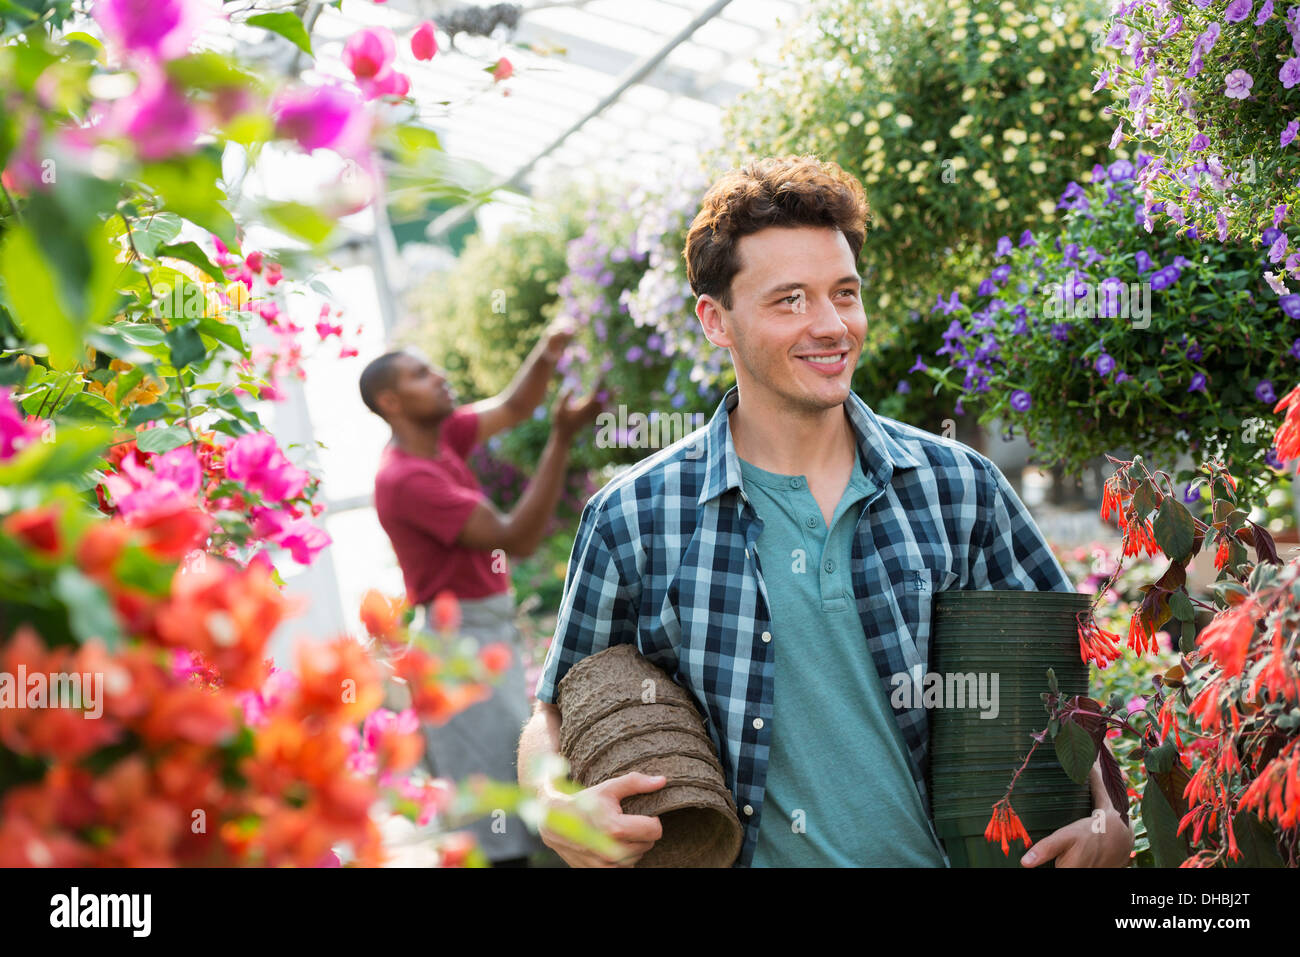 A commercial greenhouse in a plant nursery growing organic flowers. A man working, carrying pots. - Stock Image